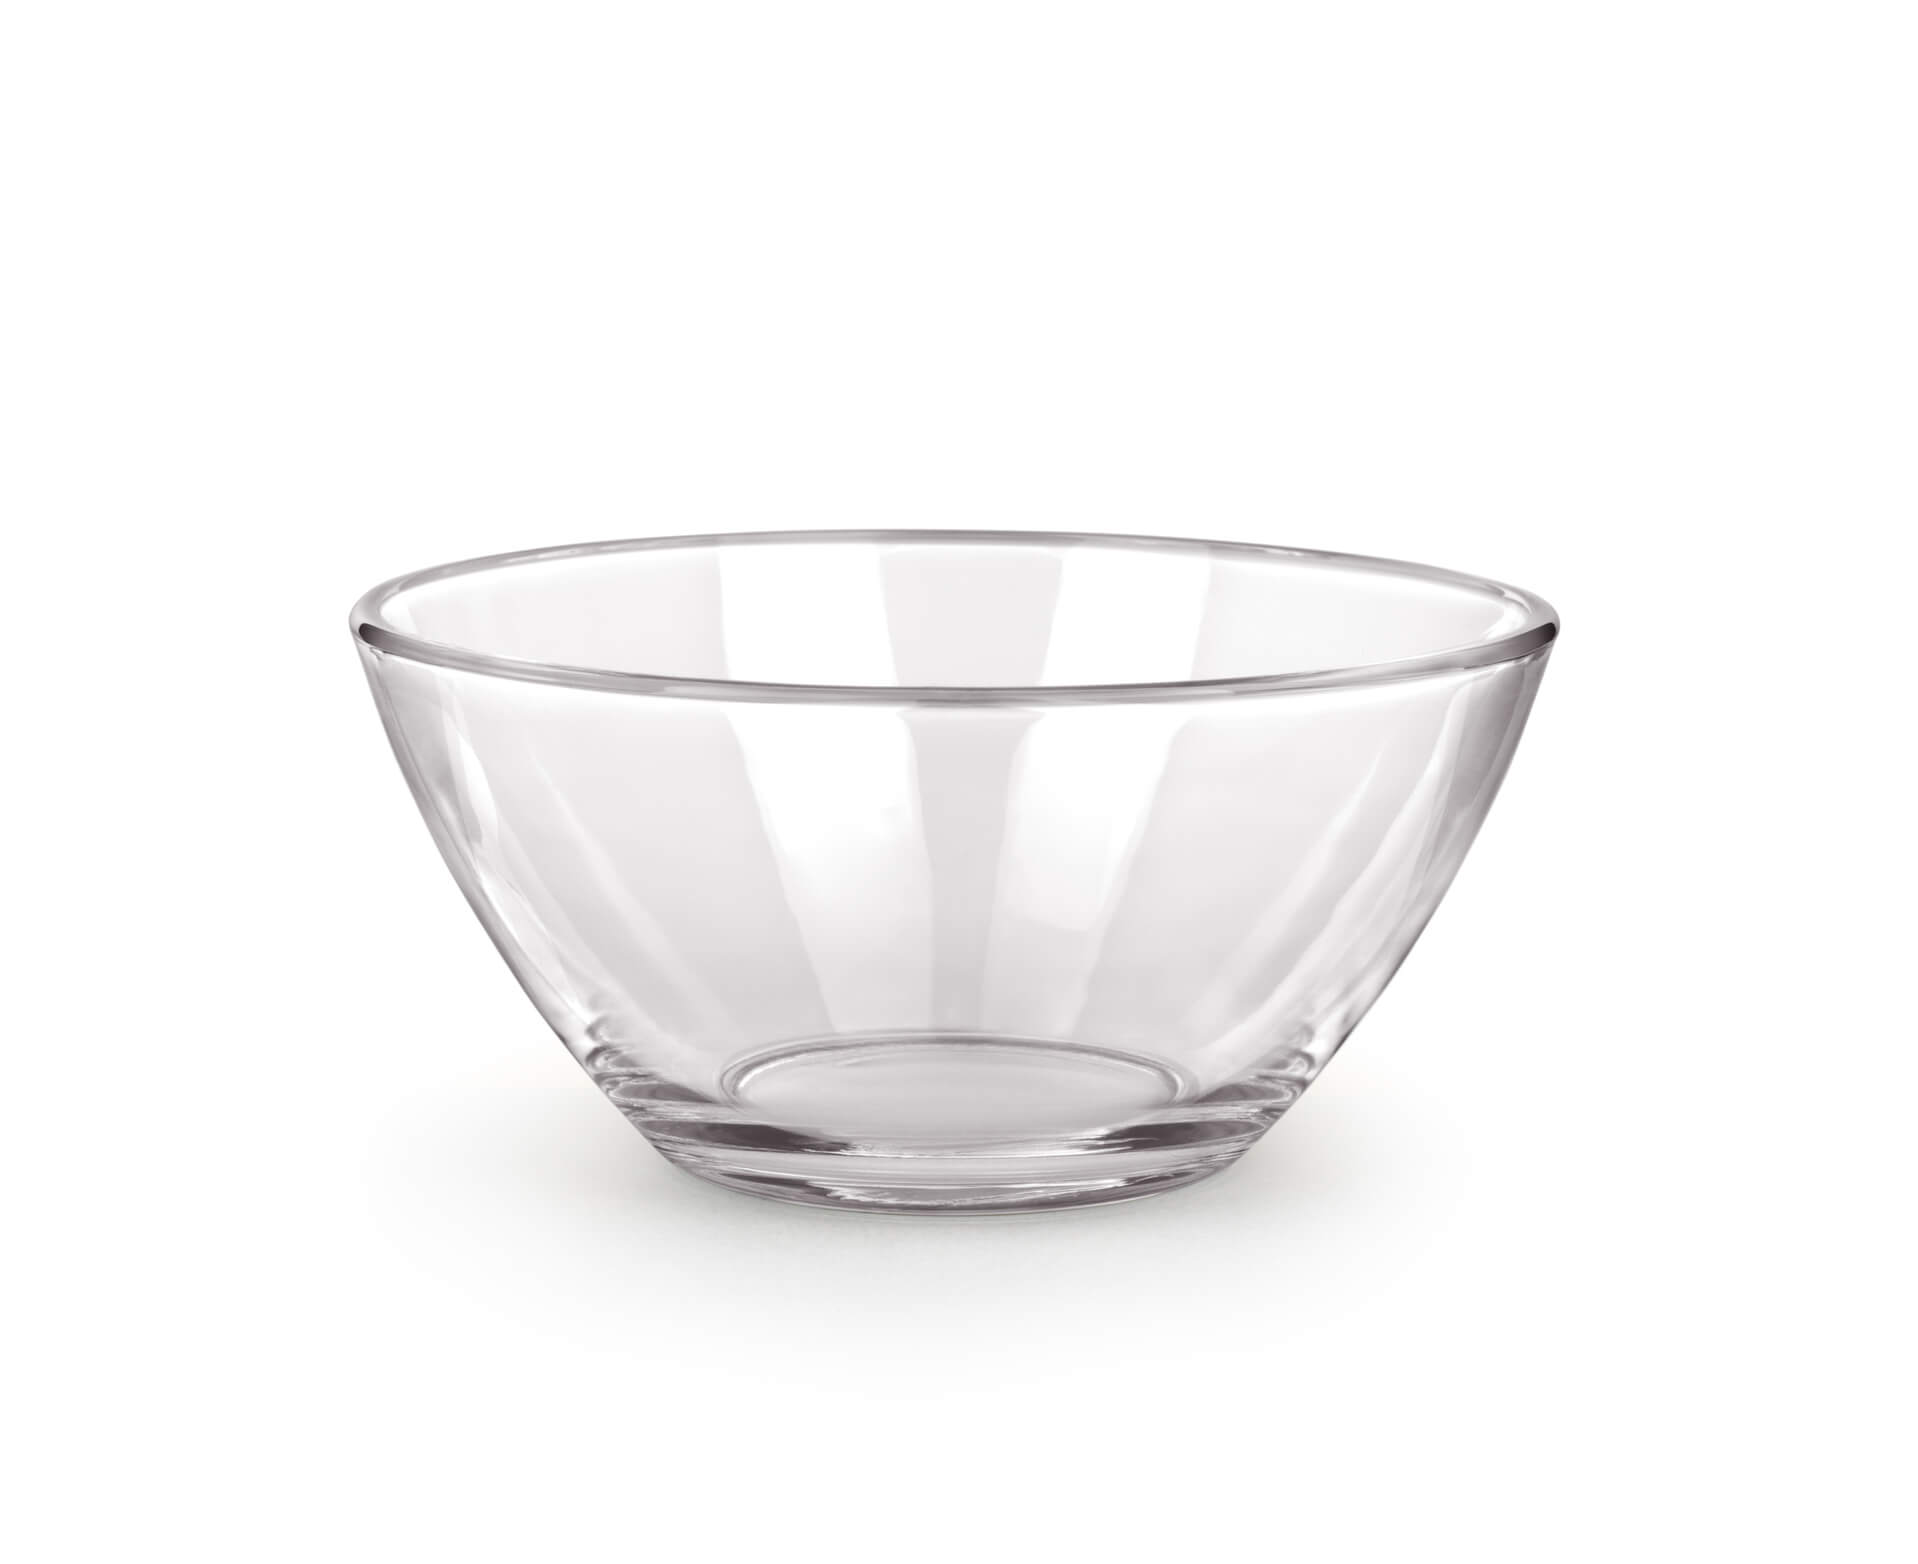 Empty glass bowl isolated on a white background.